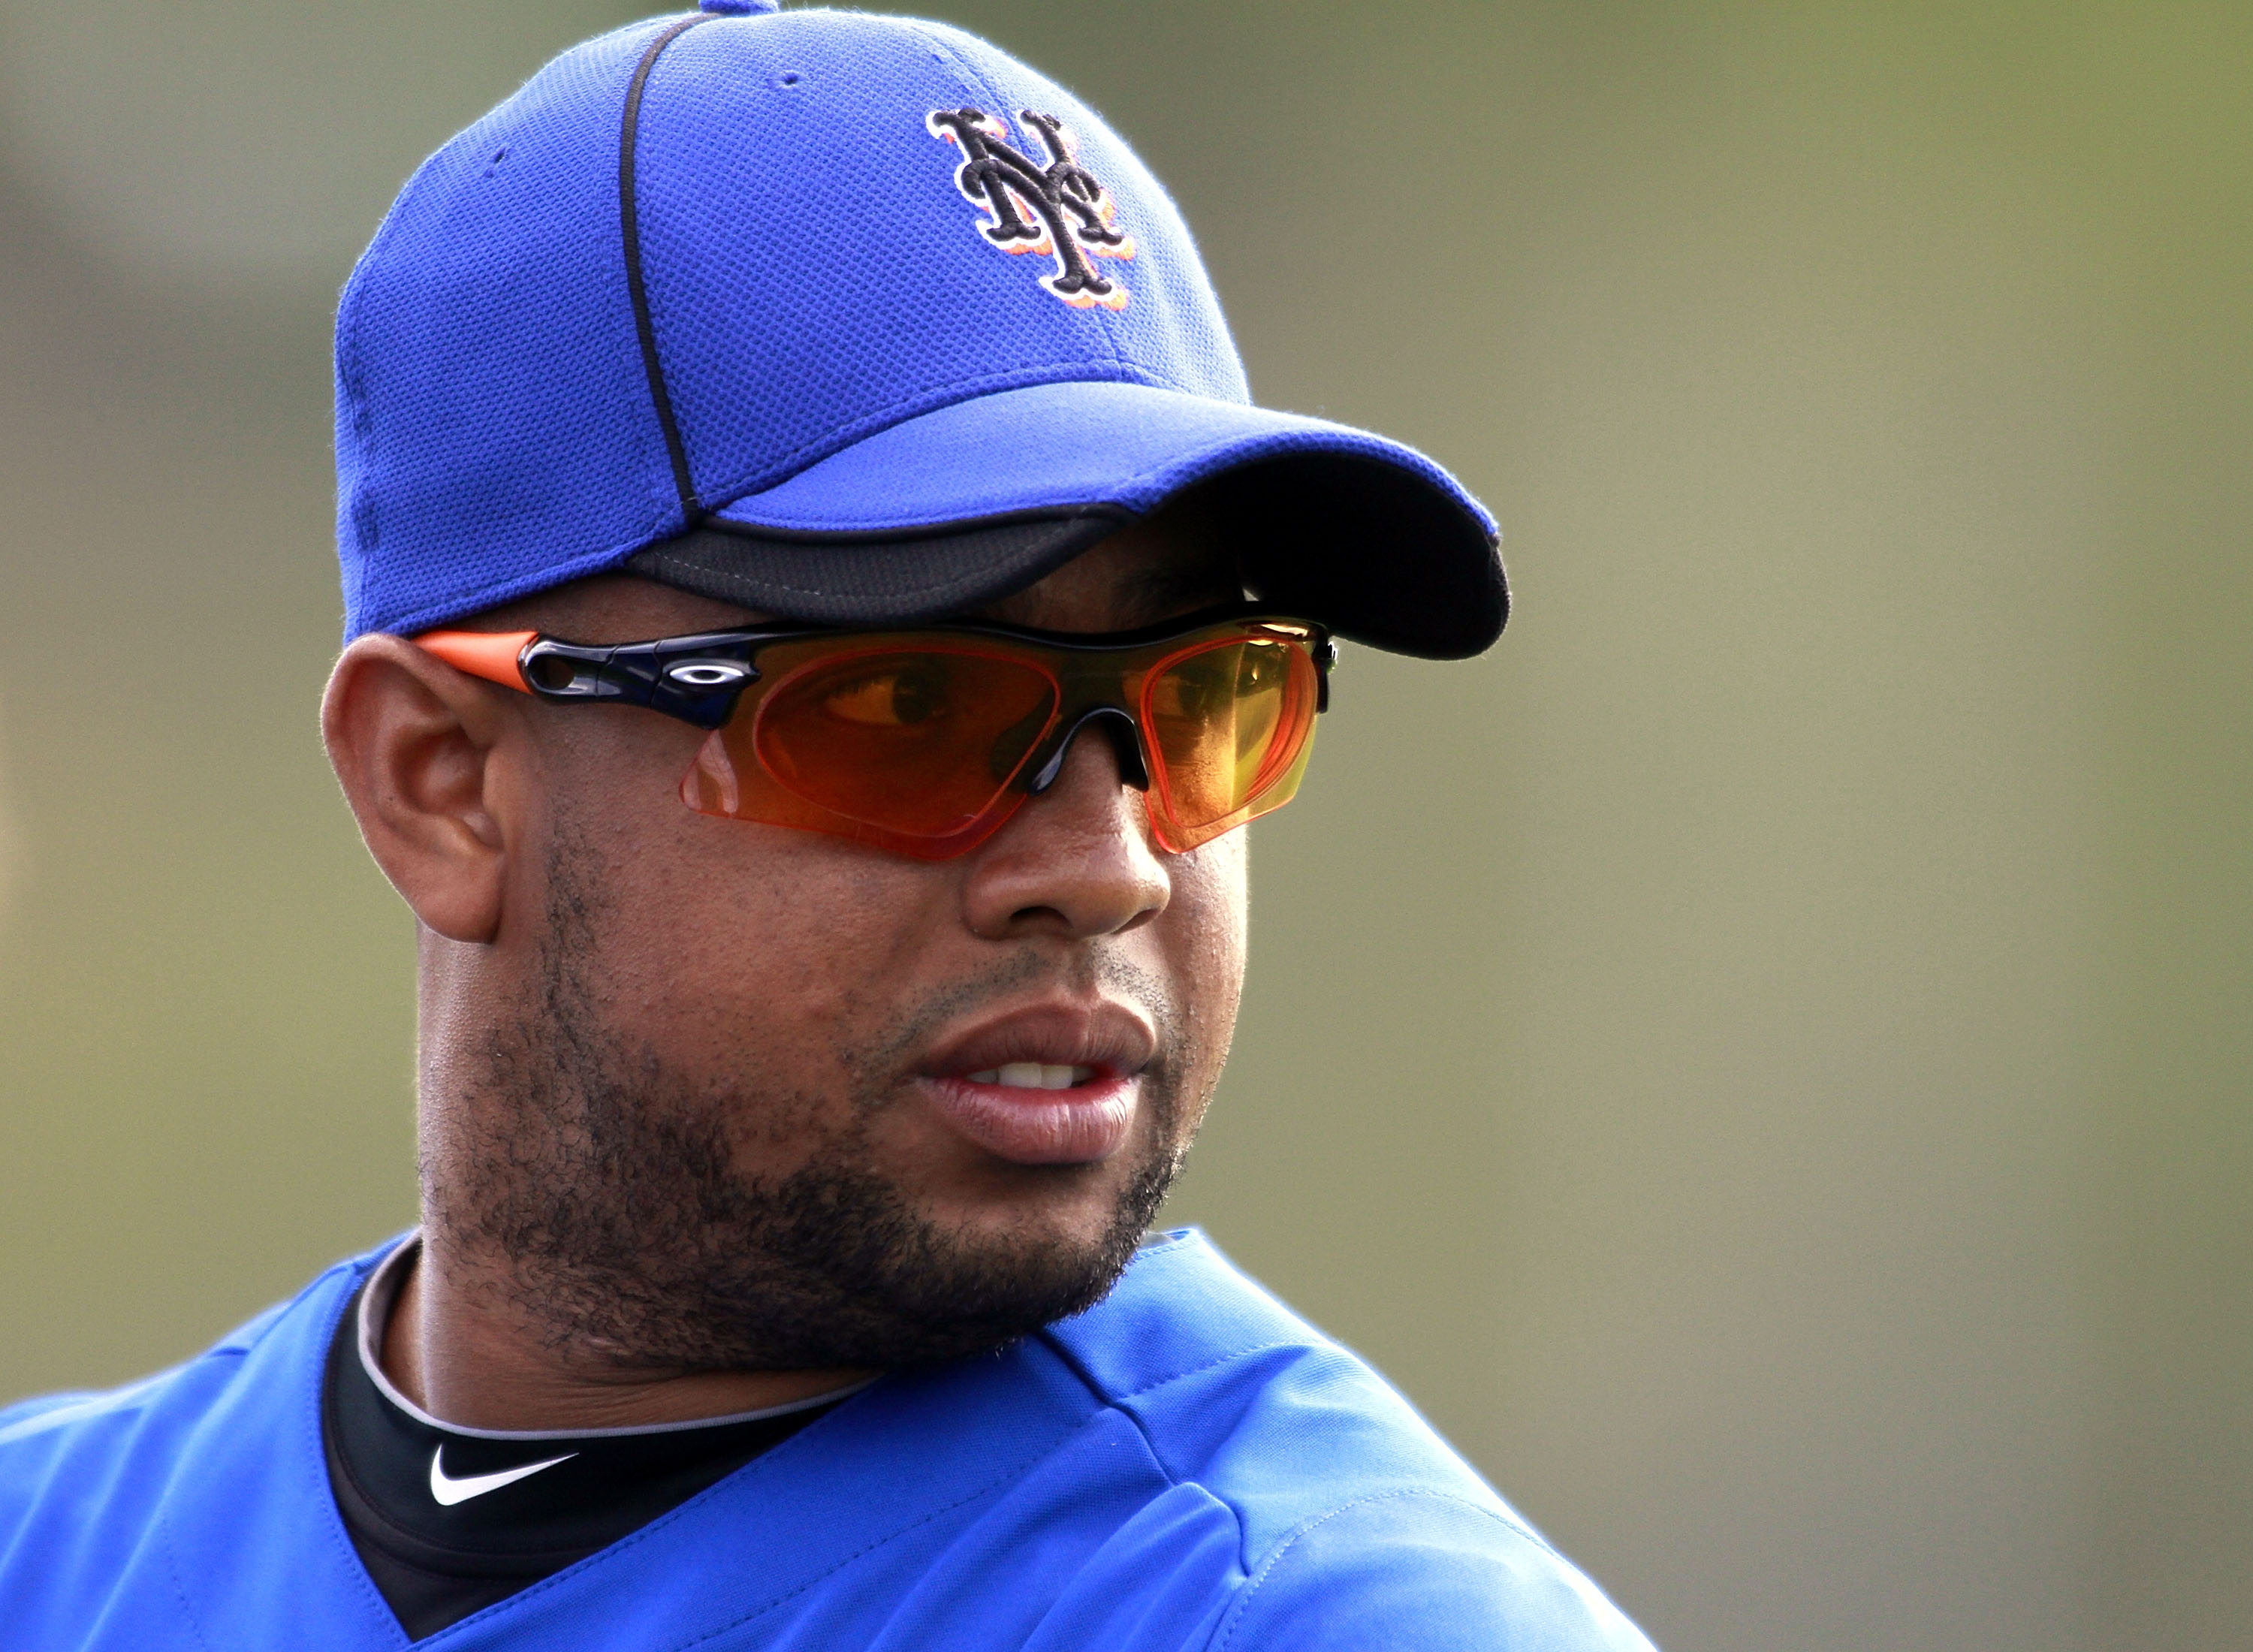 PORT ST. LUCIE, FL - FEBRUARY 17: Pitcher Francisco Rodriguez #75 of the New York Mets works out during spring training at Tradition Field on February 17, 2011 in Port St. Lucie, Florida.  (Photo by Marc Serota/Getty Images)